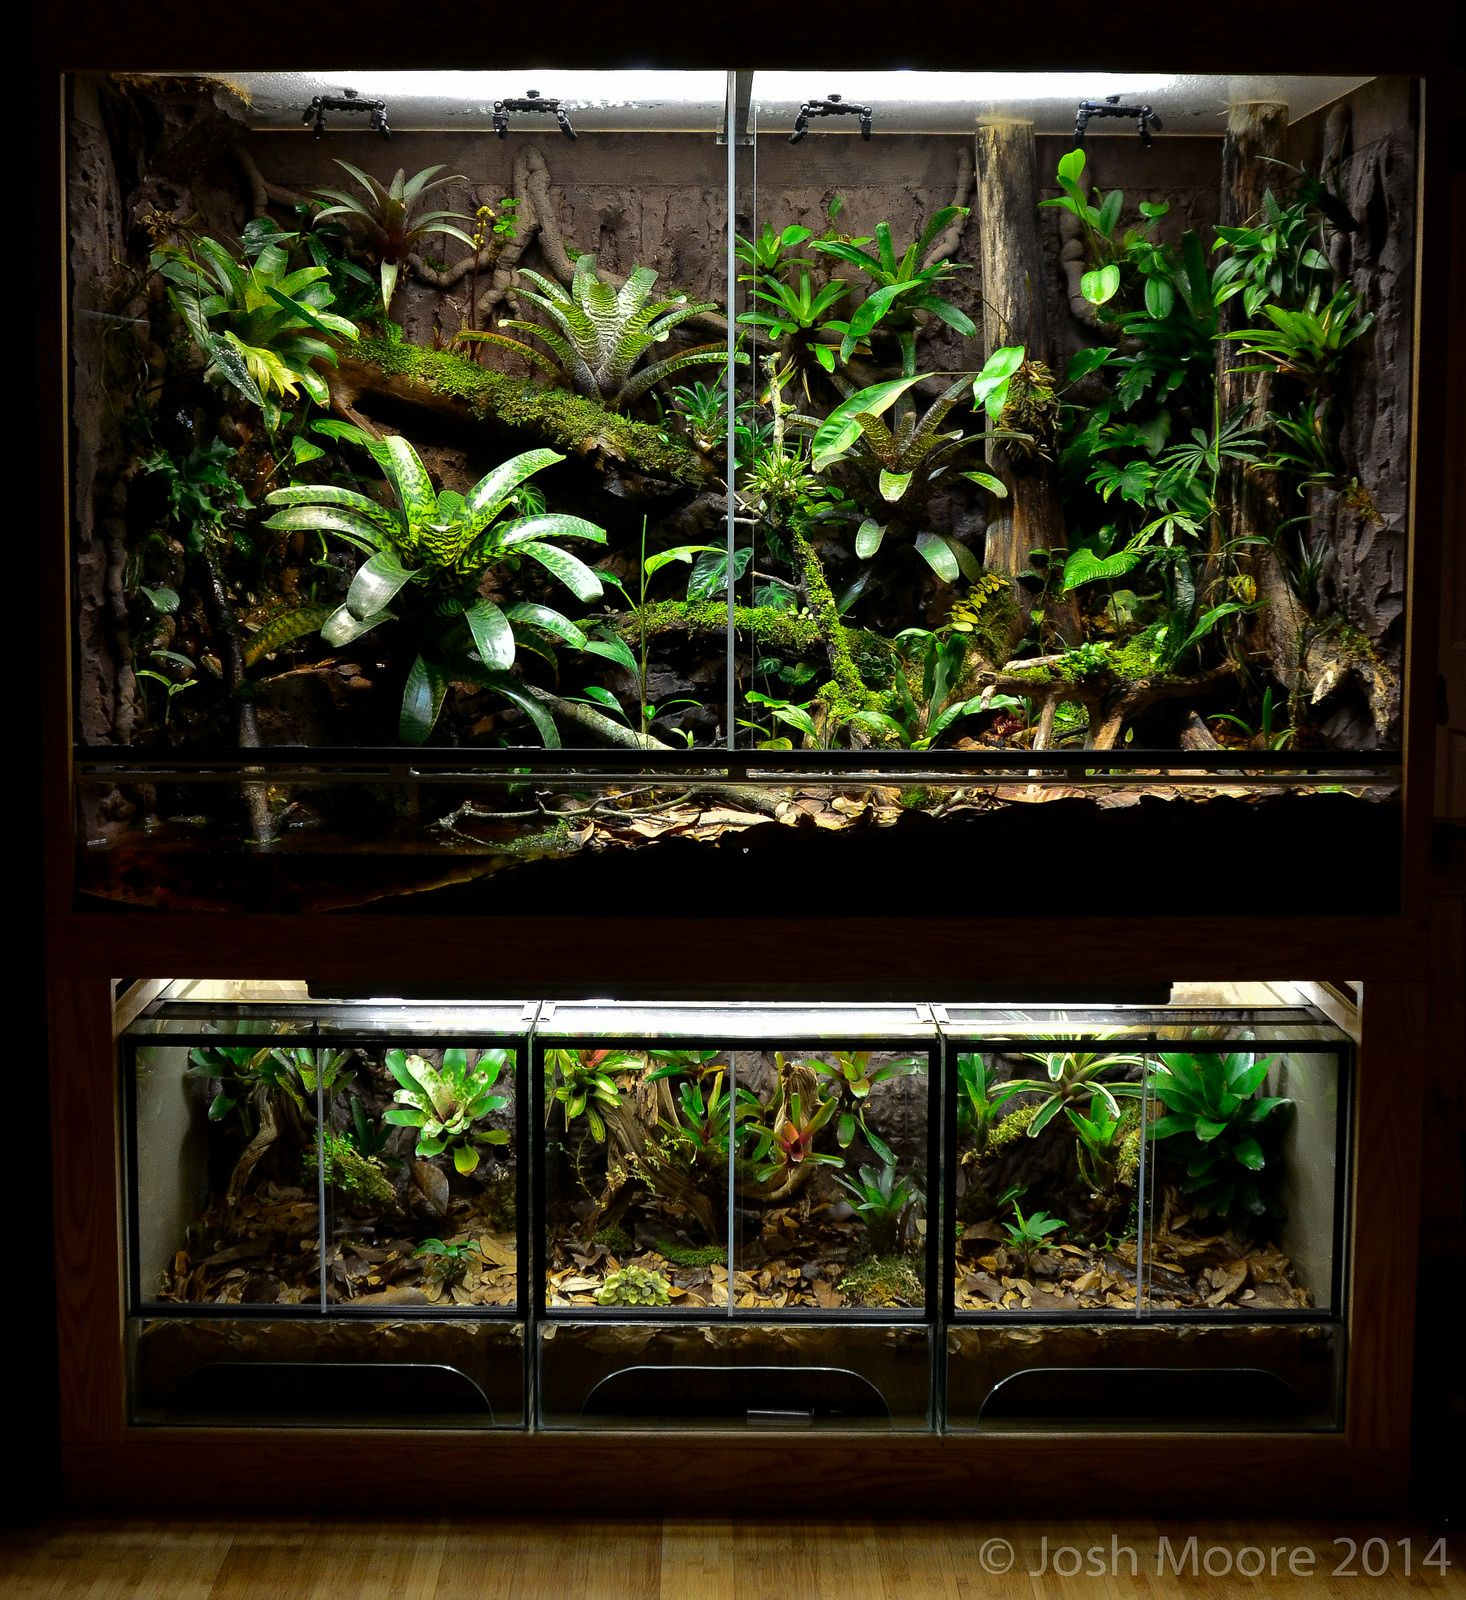 Click the image to open in full size vivarium inspiration